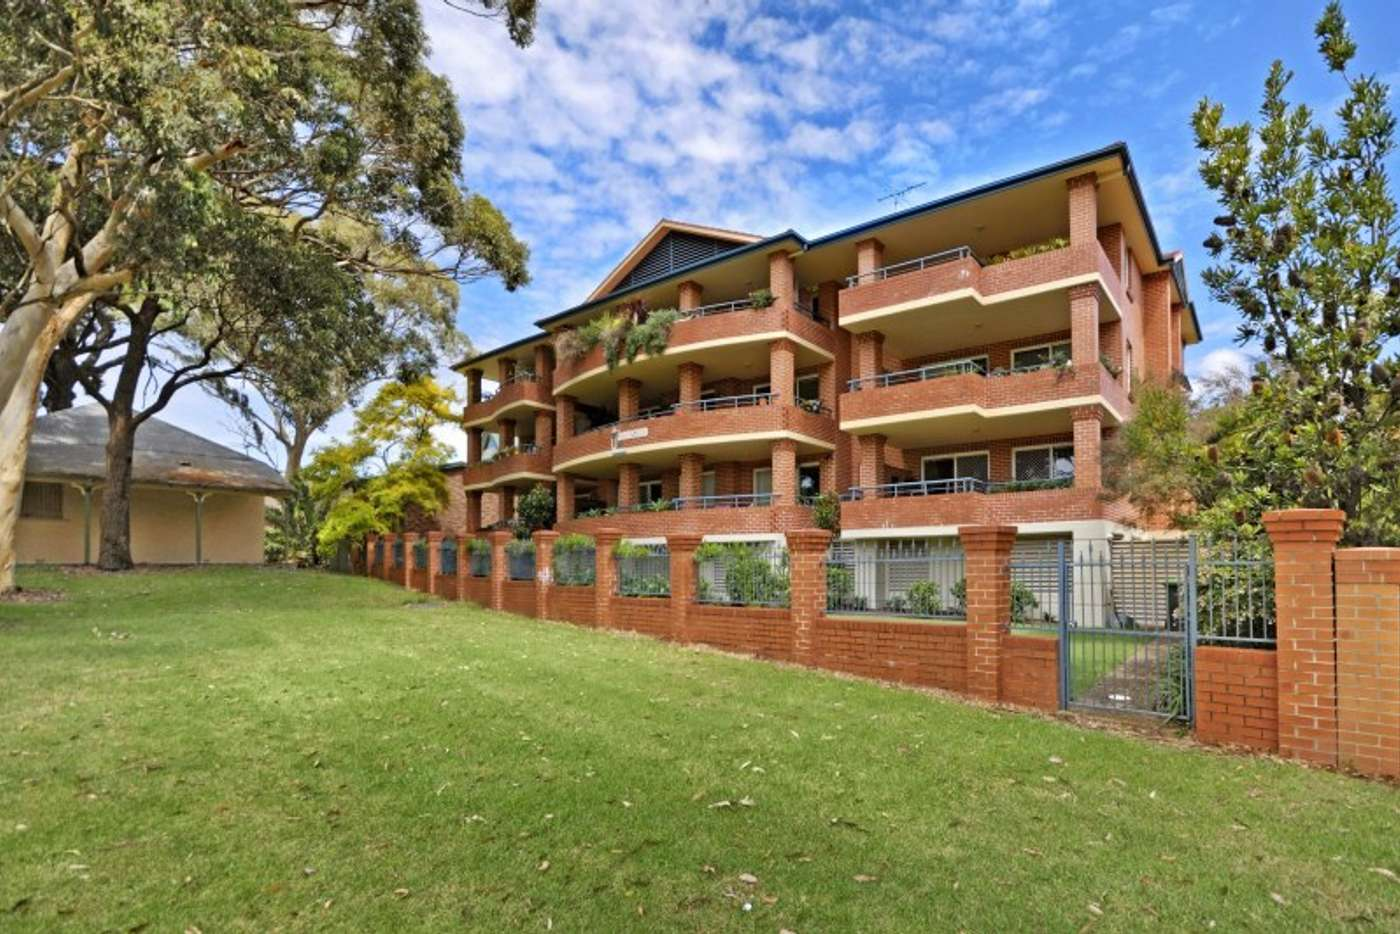 Main view of Homely unit listing, 13/210 Willarong Road, Caringbah NSW 2229